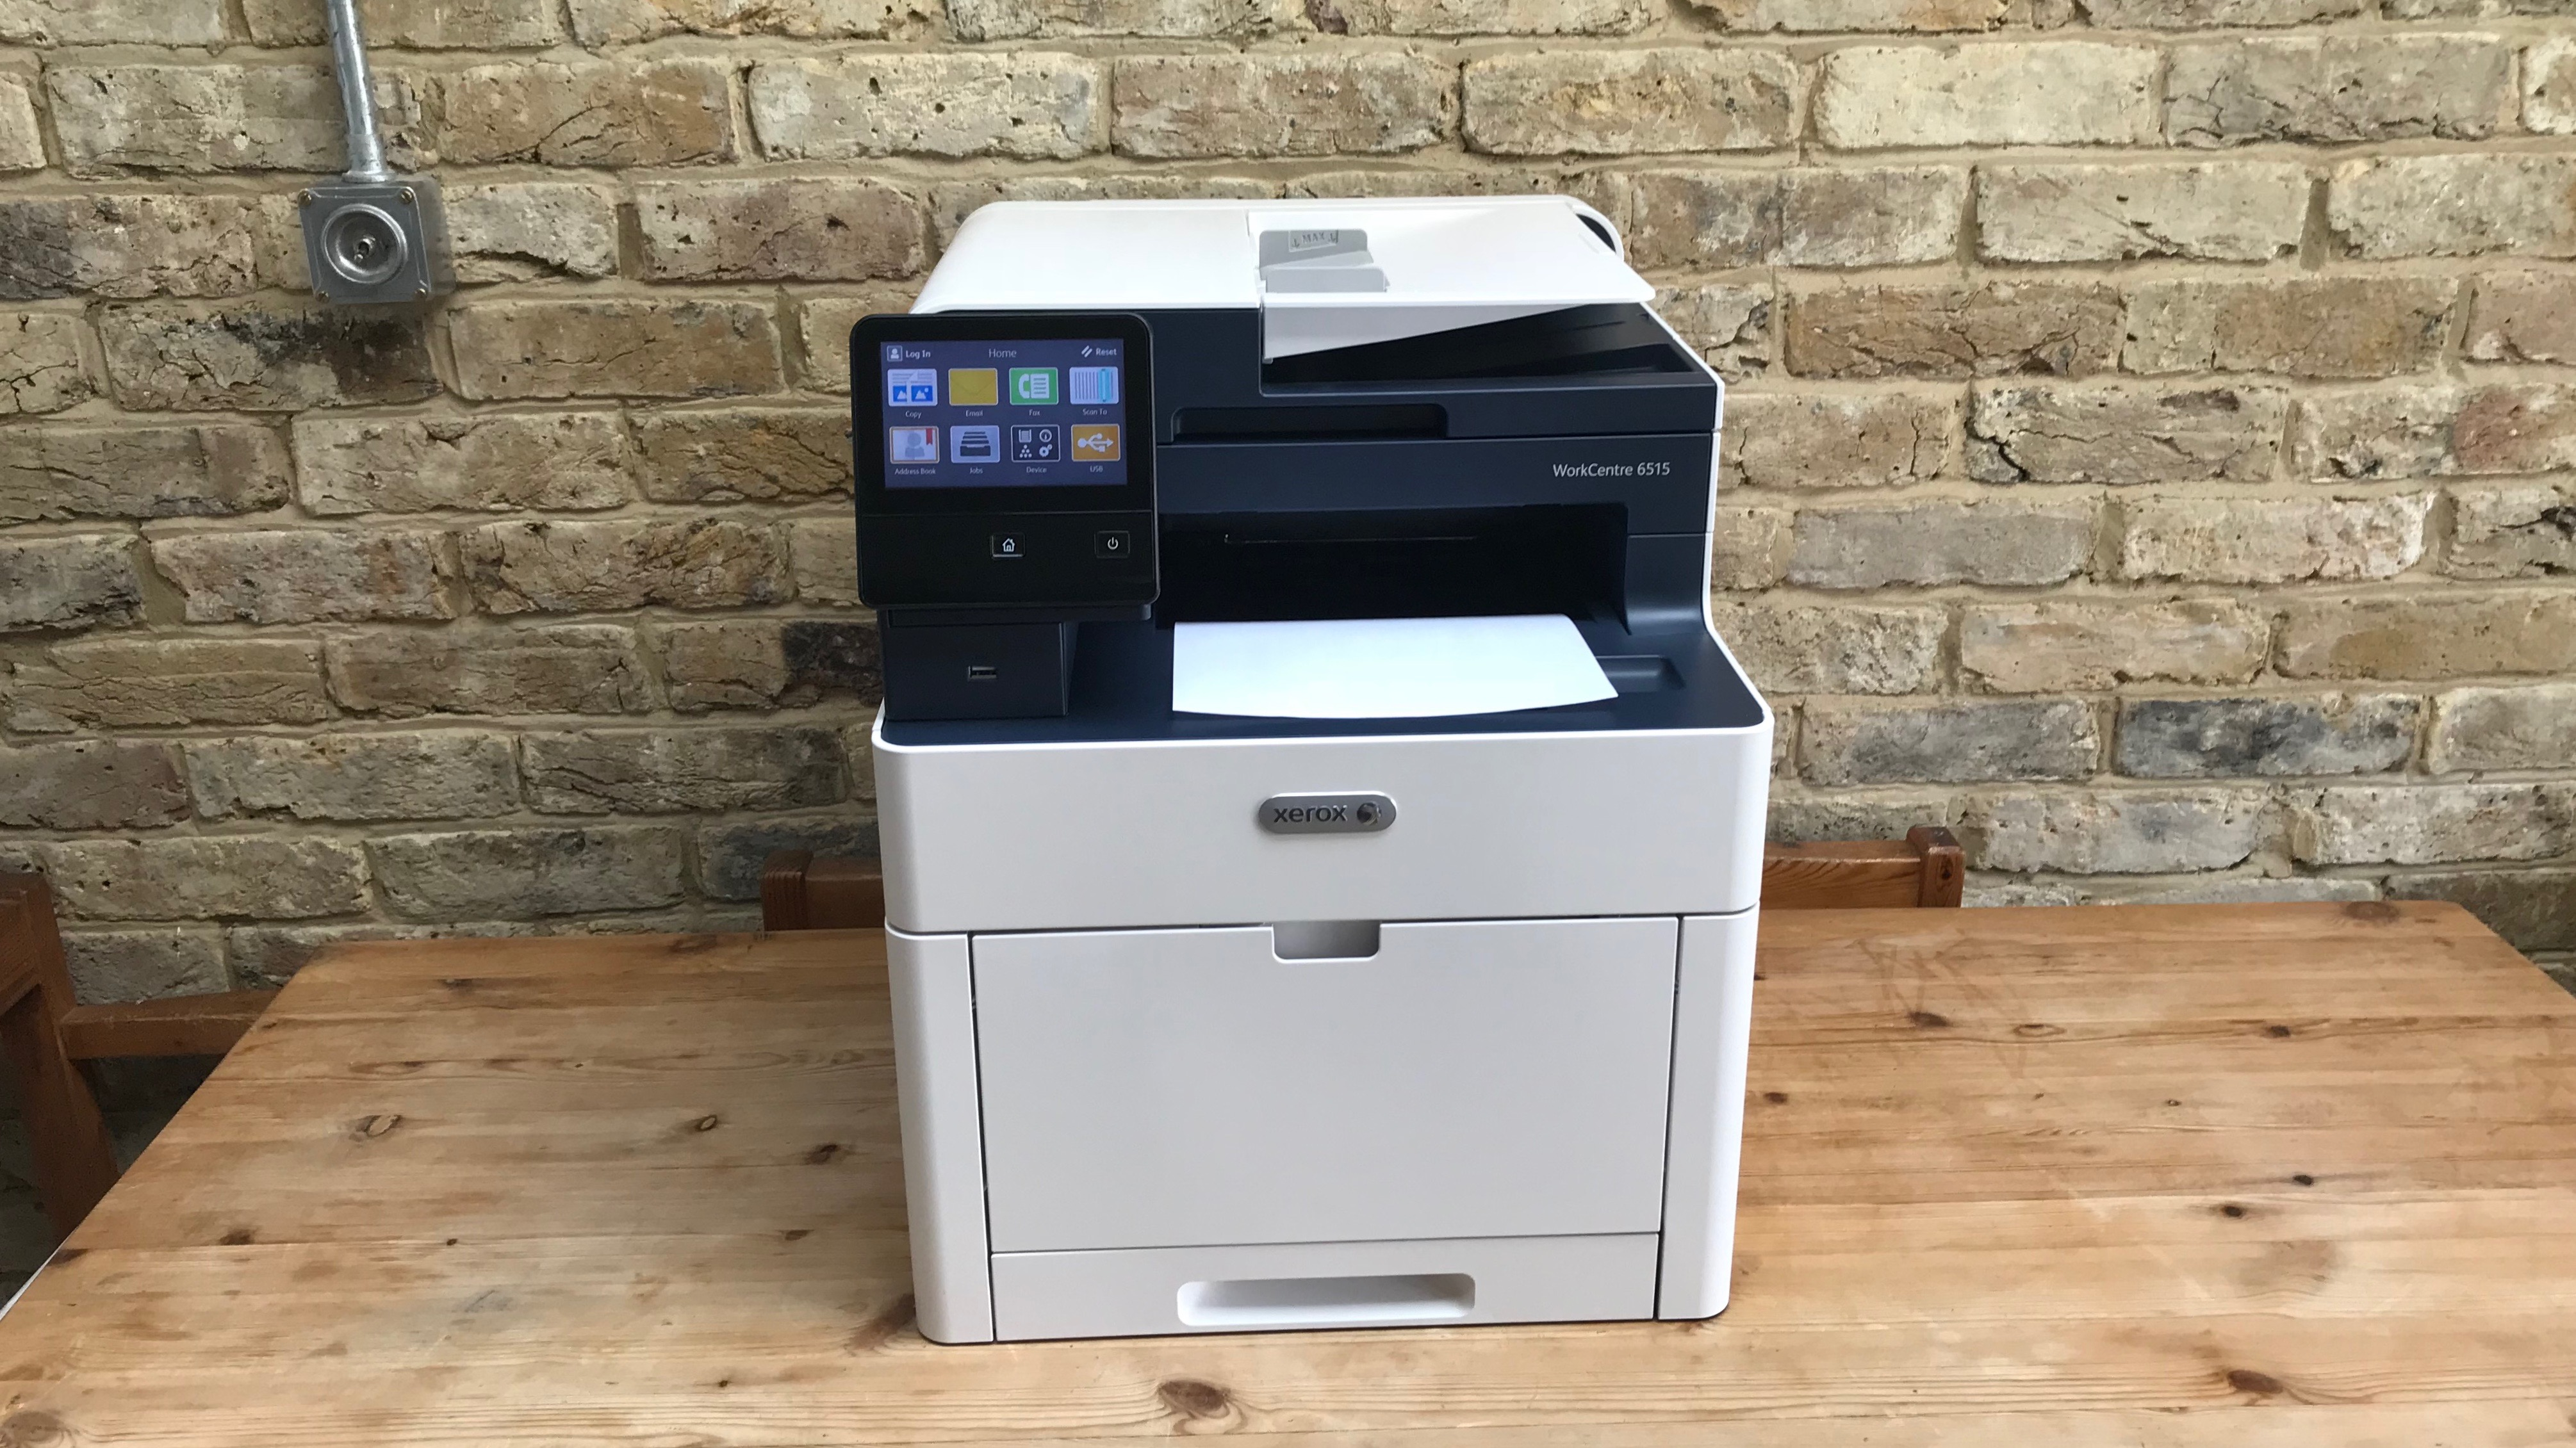 Best printers of 2019: inkjet, color, mono and laser